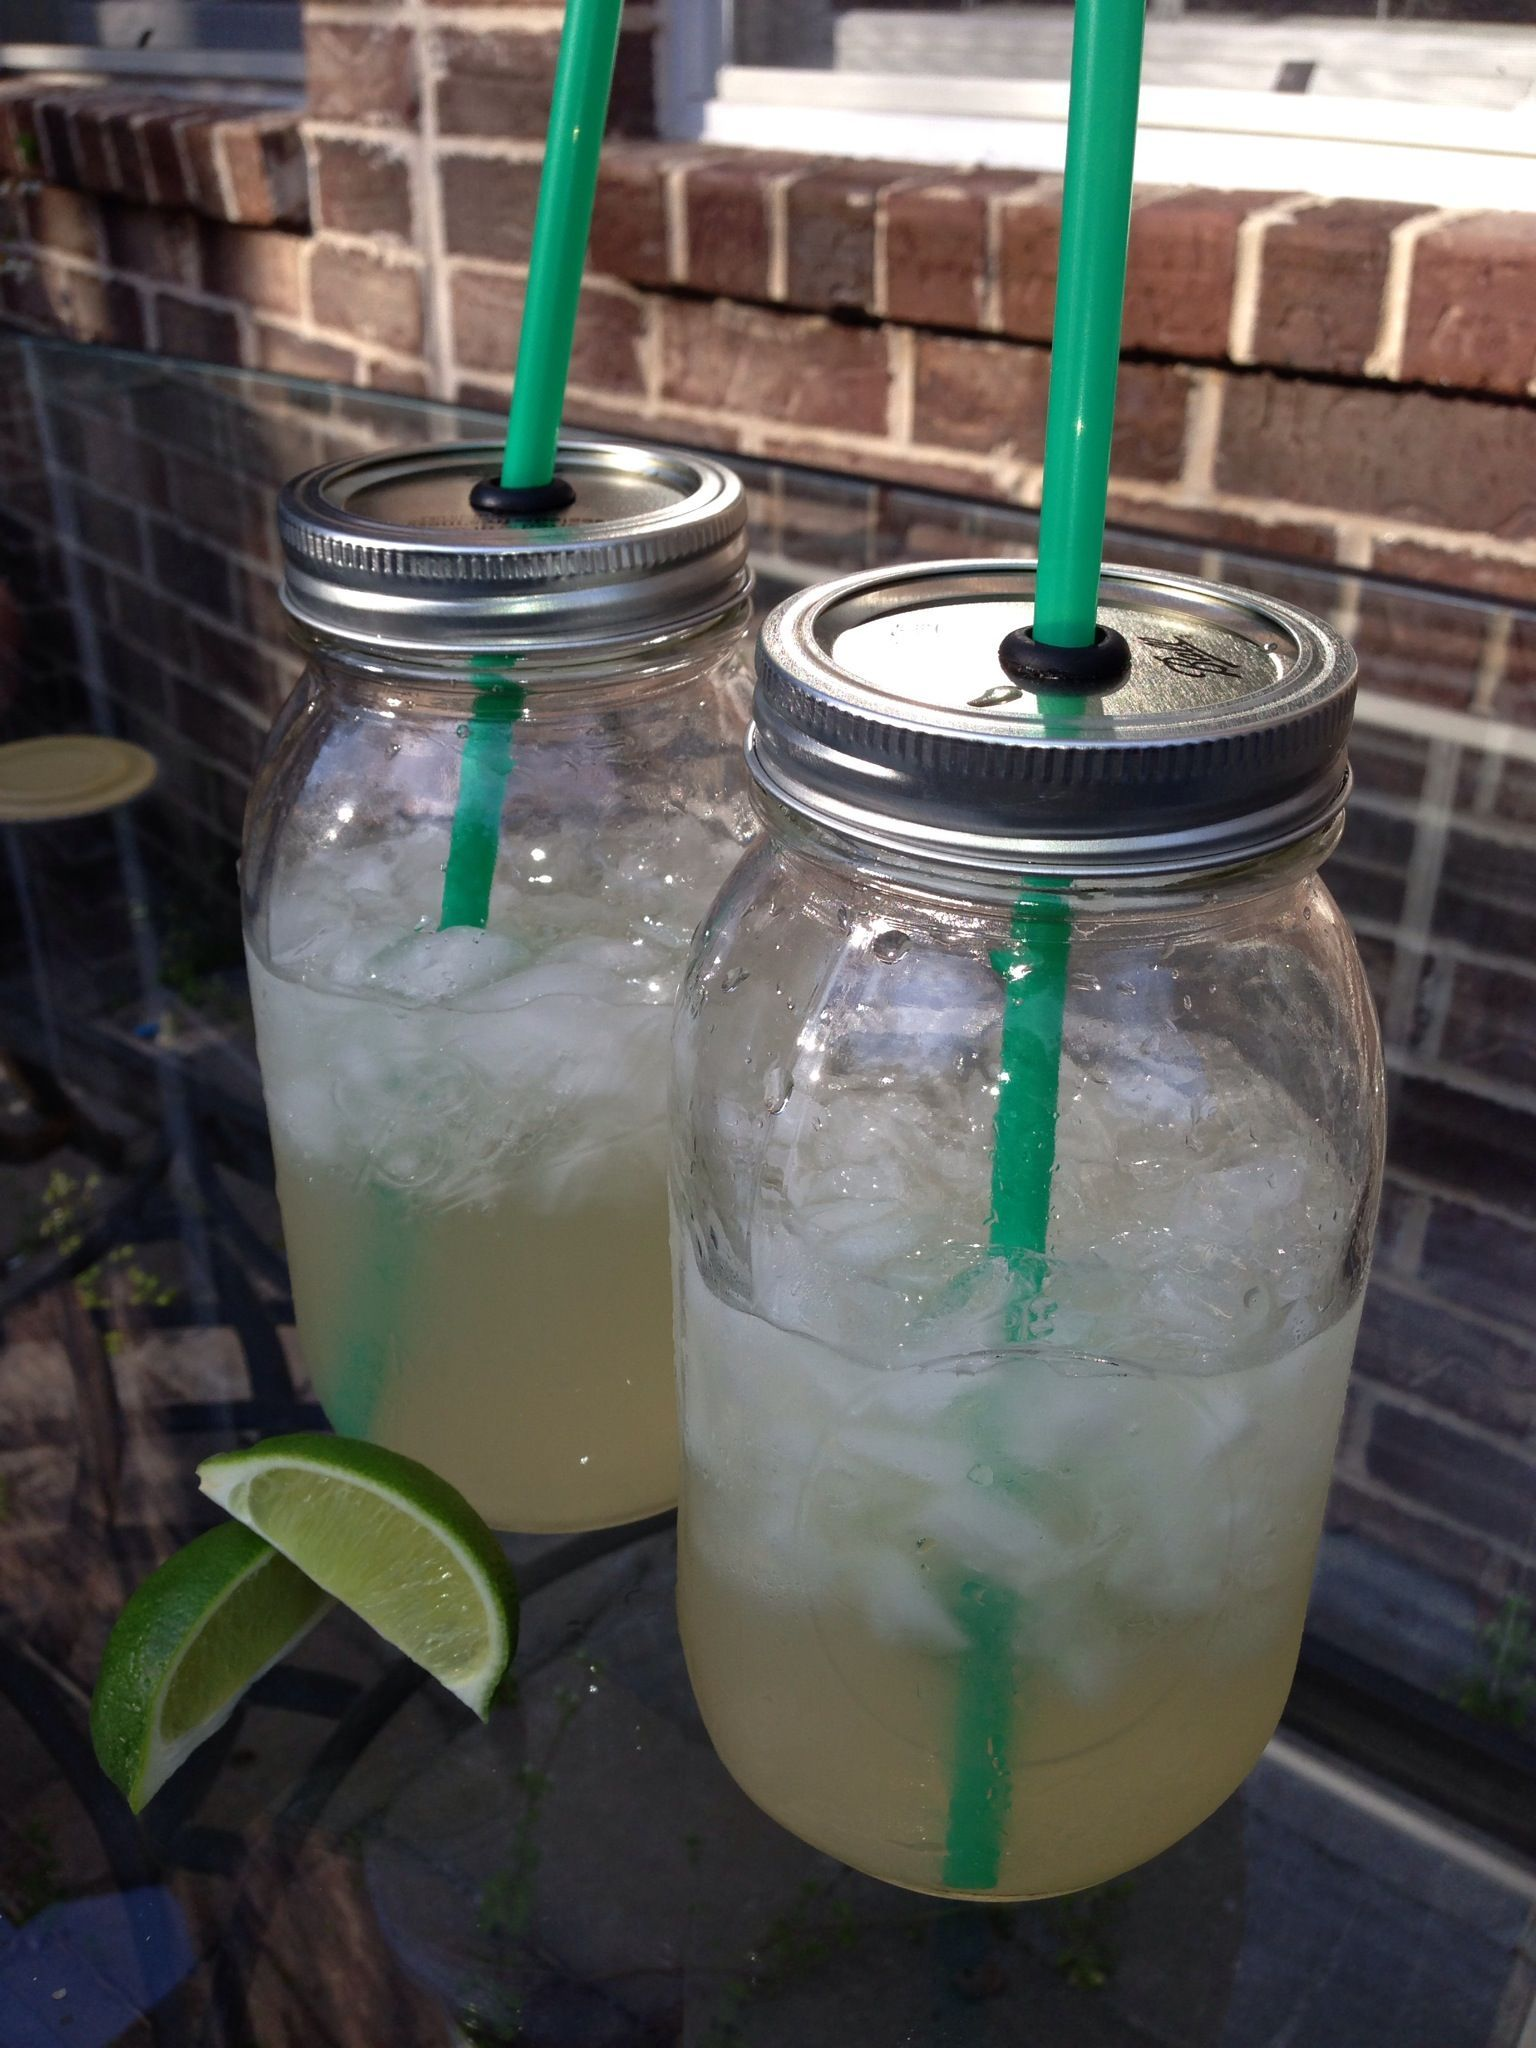 to Make Mason Jar Drink Cups How to Make Mason Jar Drink Cups. Going to replace all my glasses with mason jars and this is great for kids.How to Make Mason Jar Drink Cups. Going to replace all my glasses with mason jars and this is great for kids.